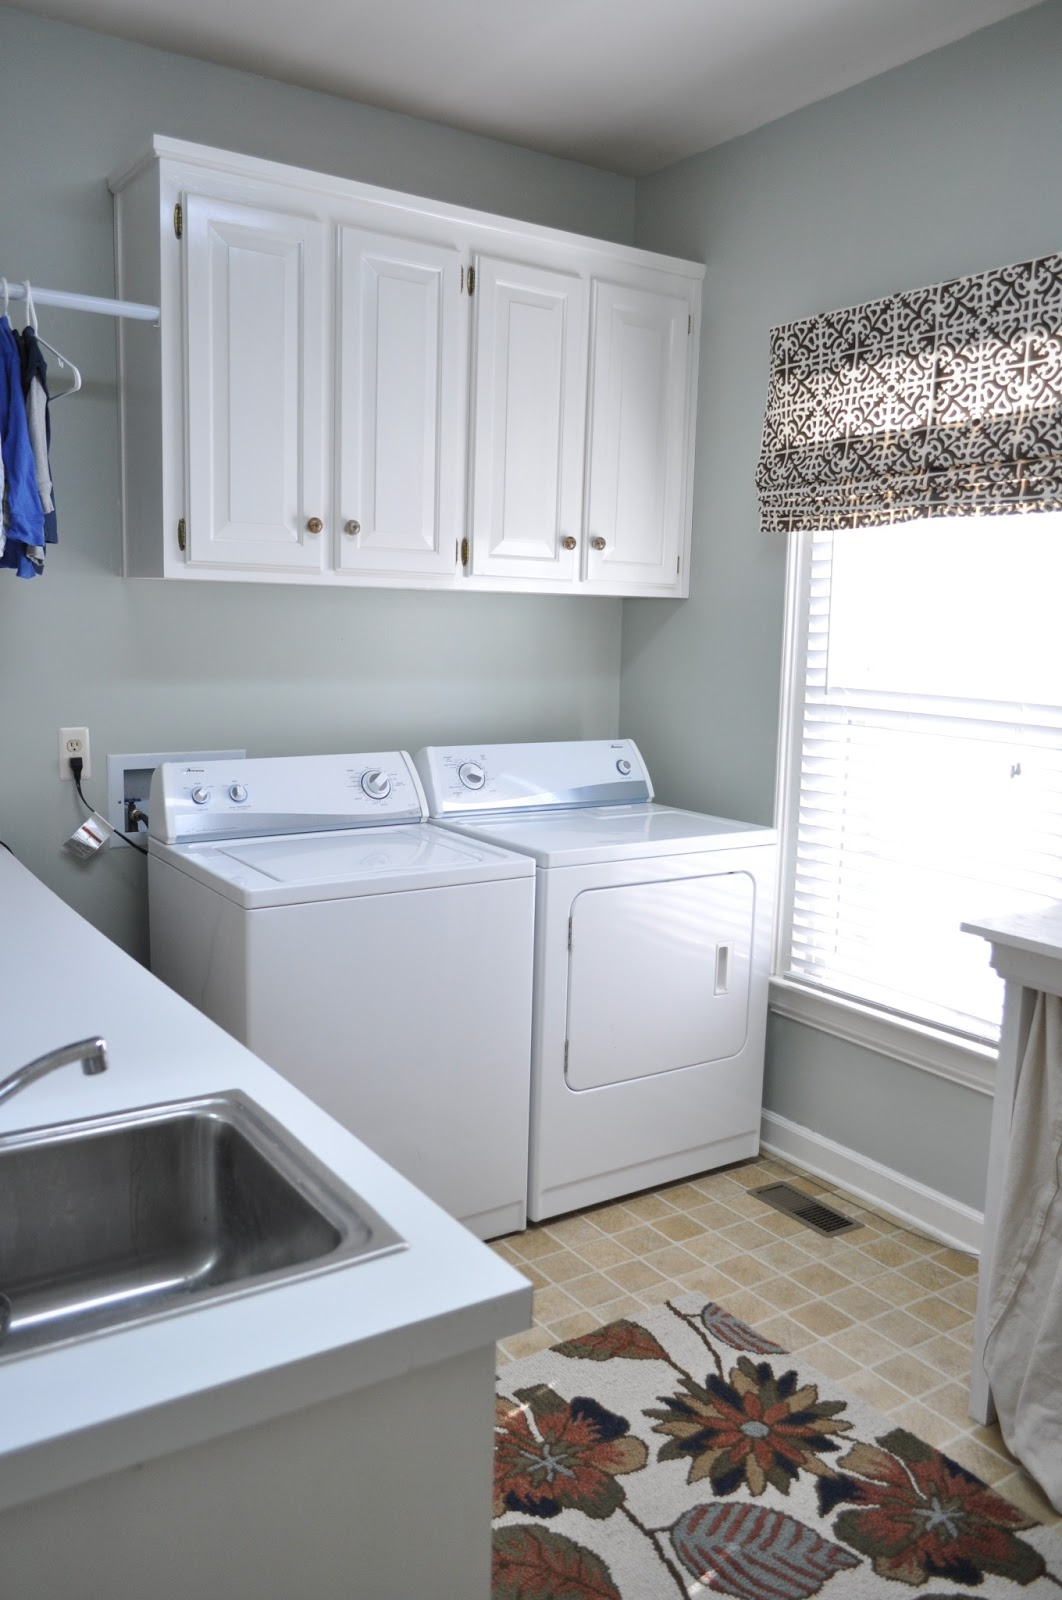 Following c 39 s laundry room redo before and after - Sherwin williams comfort gray living room ...